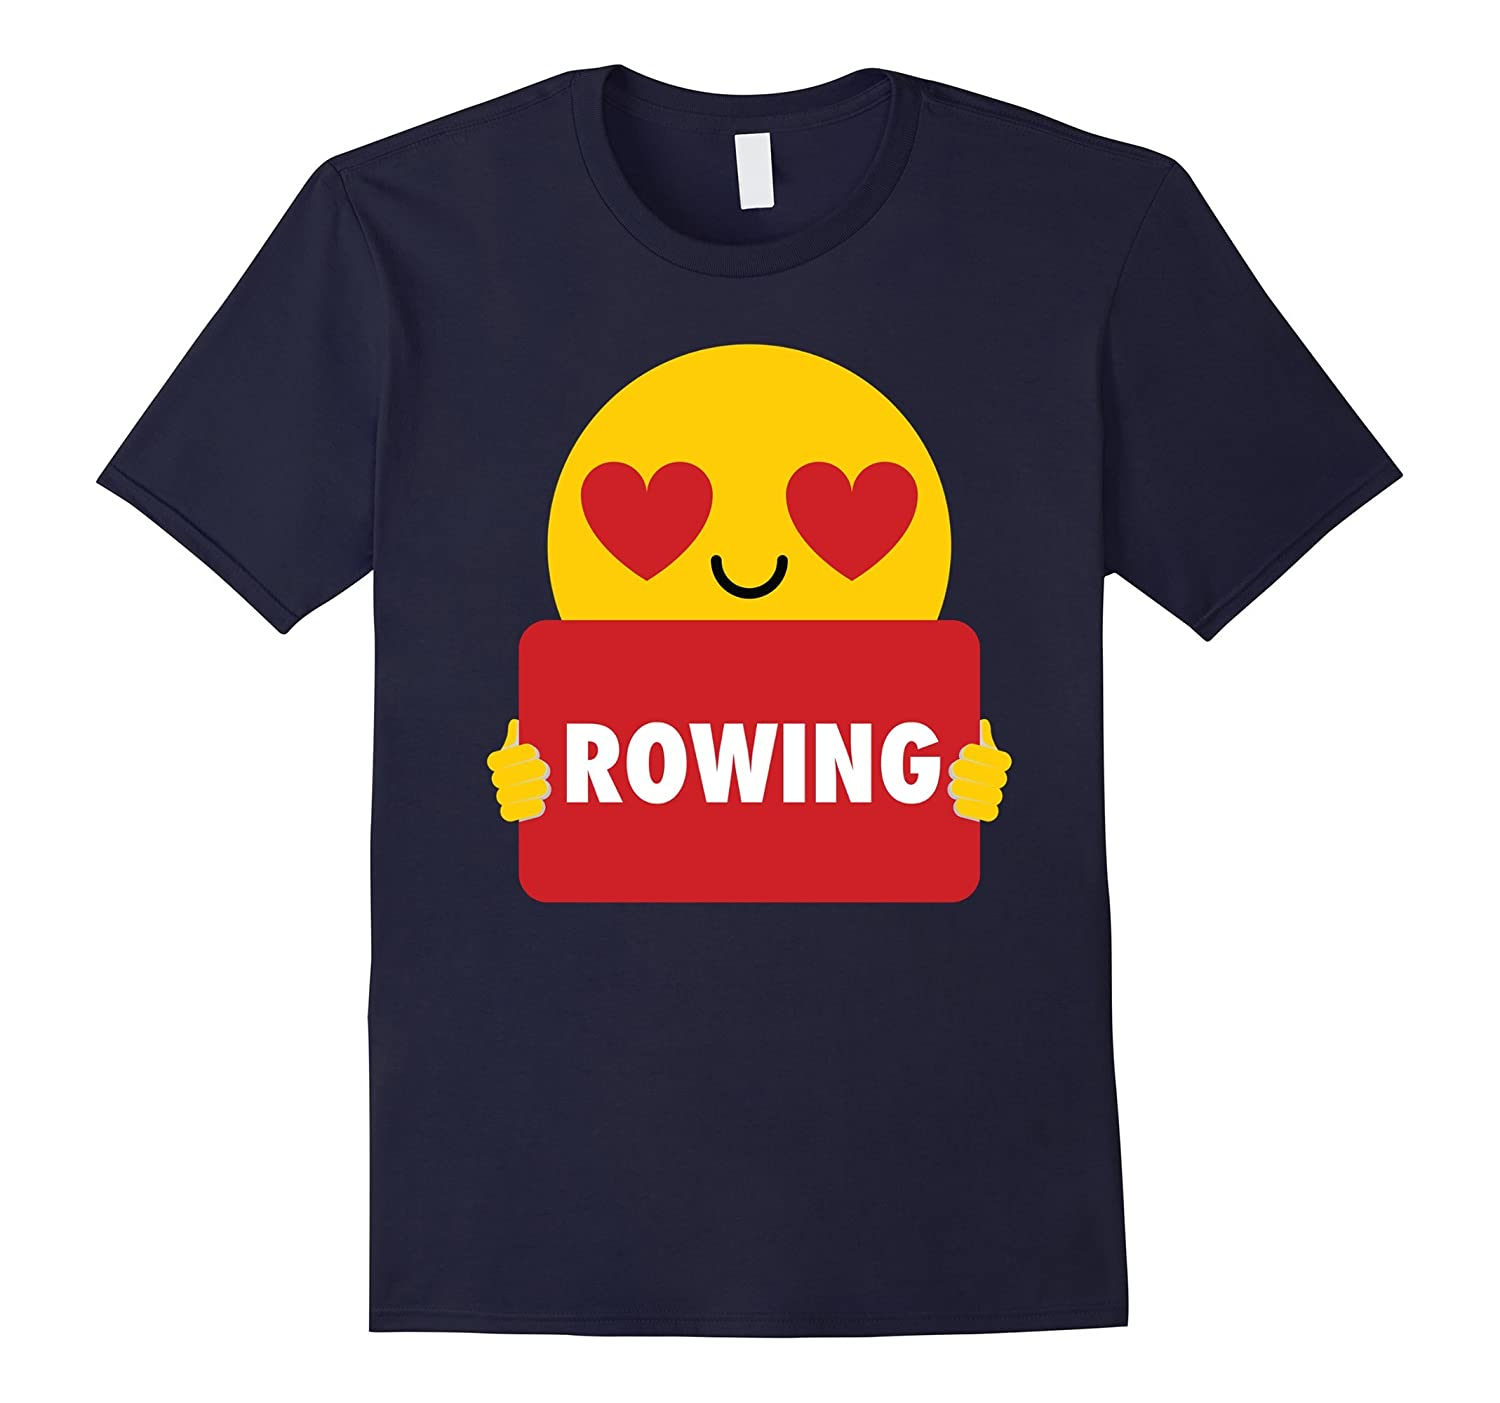 Rowing Shirt Heart Eye Emoji T-Shirt Tee-FL